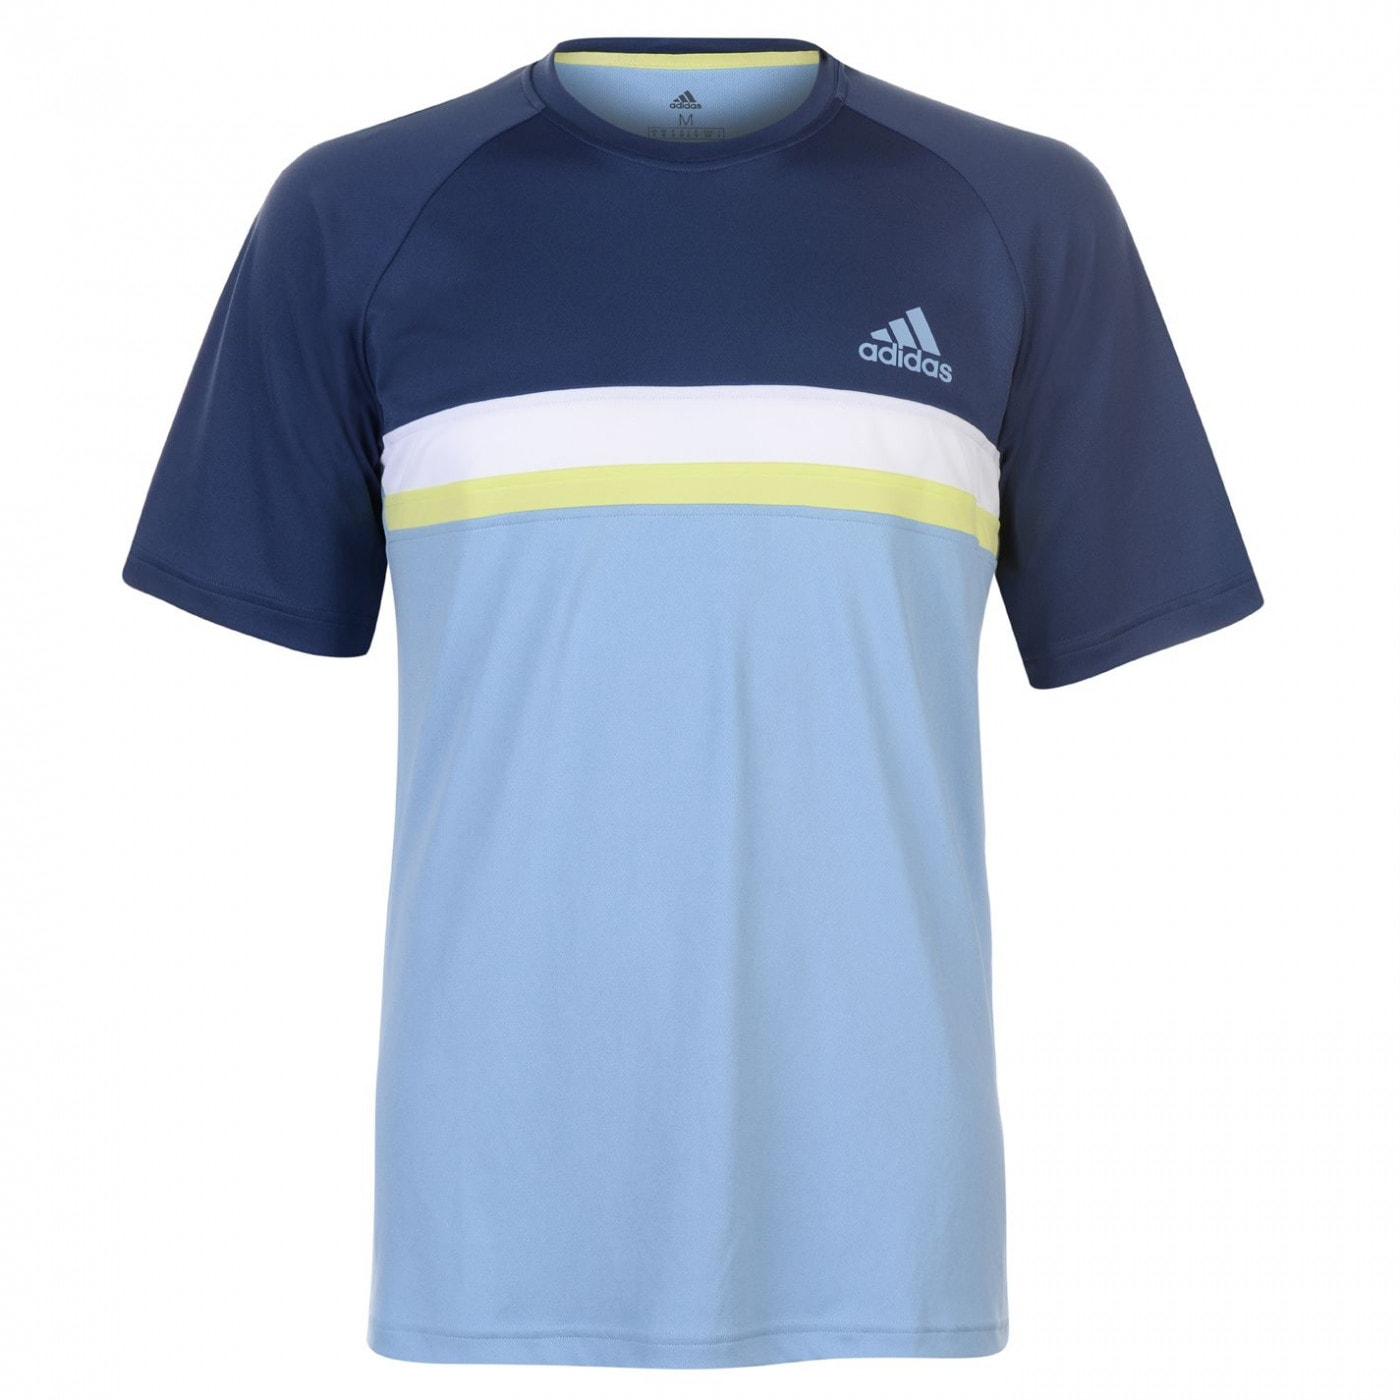 Adidas Club T Shirt Mens